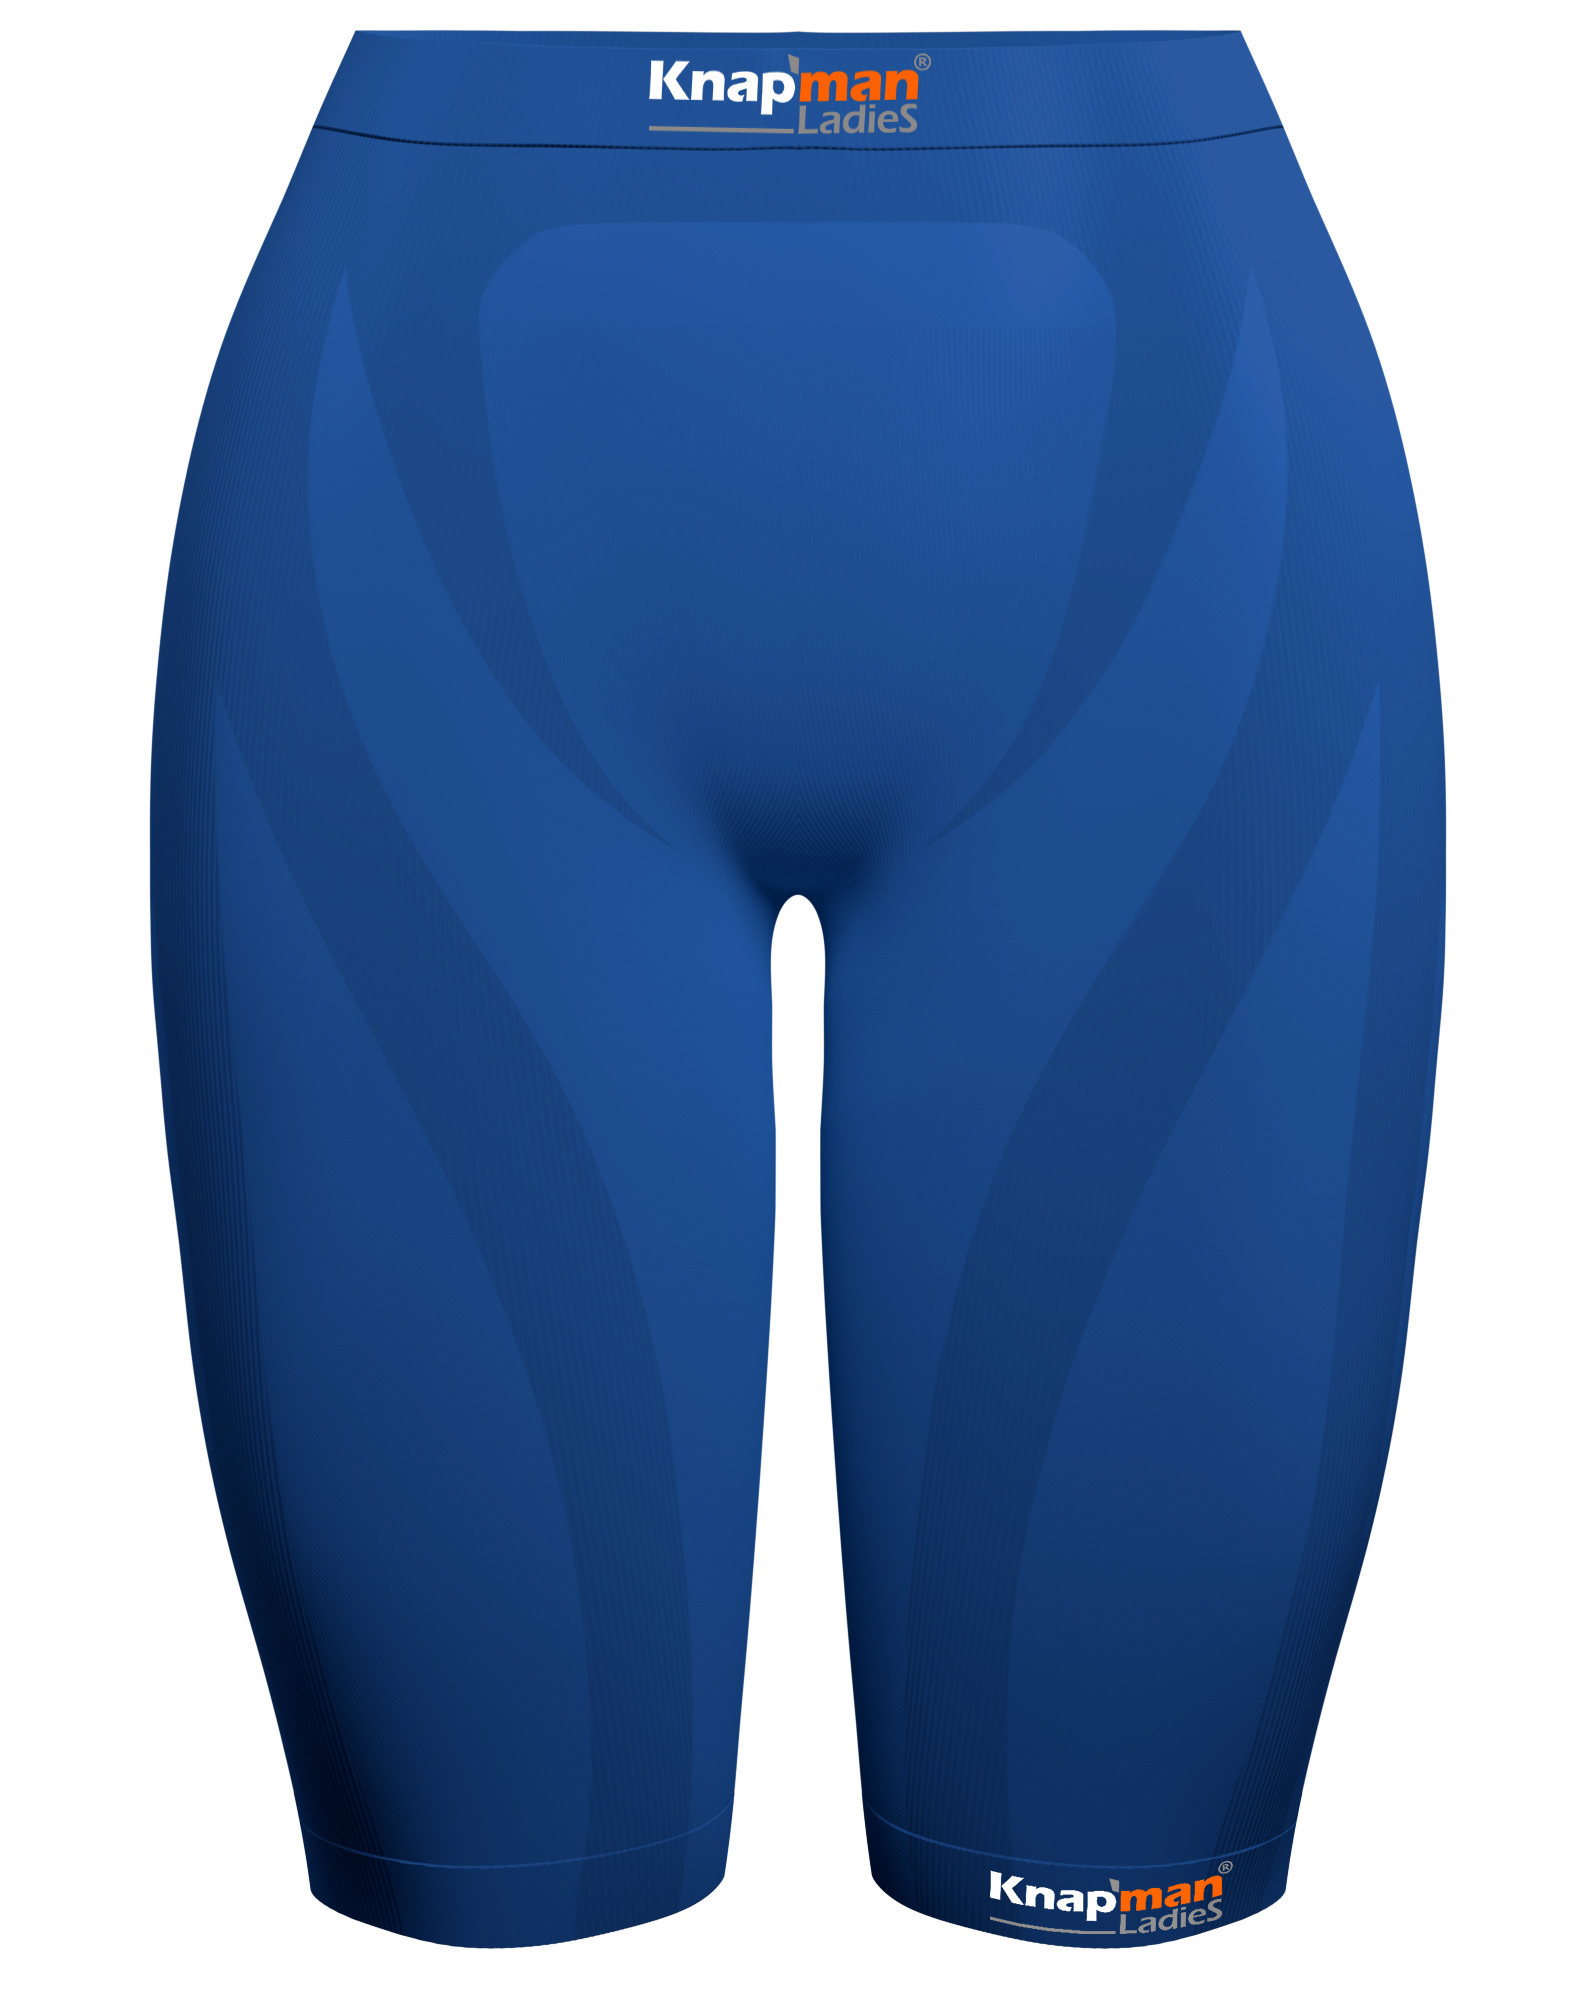 Knap'man Zoned Compression Short USP 45% Ladies Royal Blue